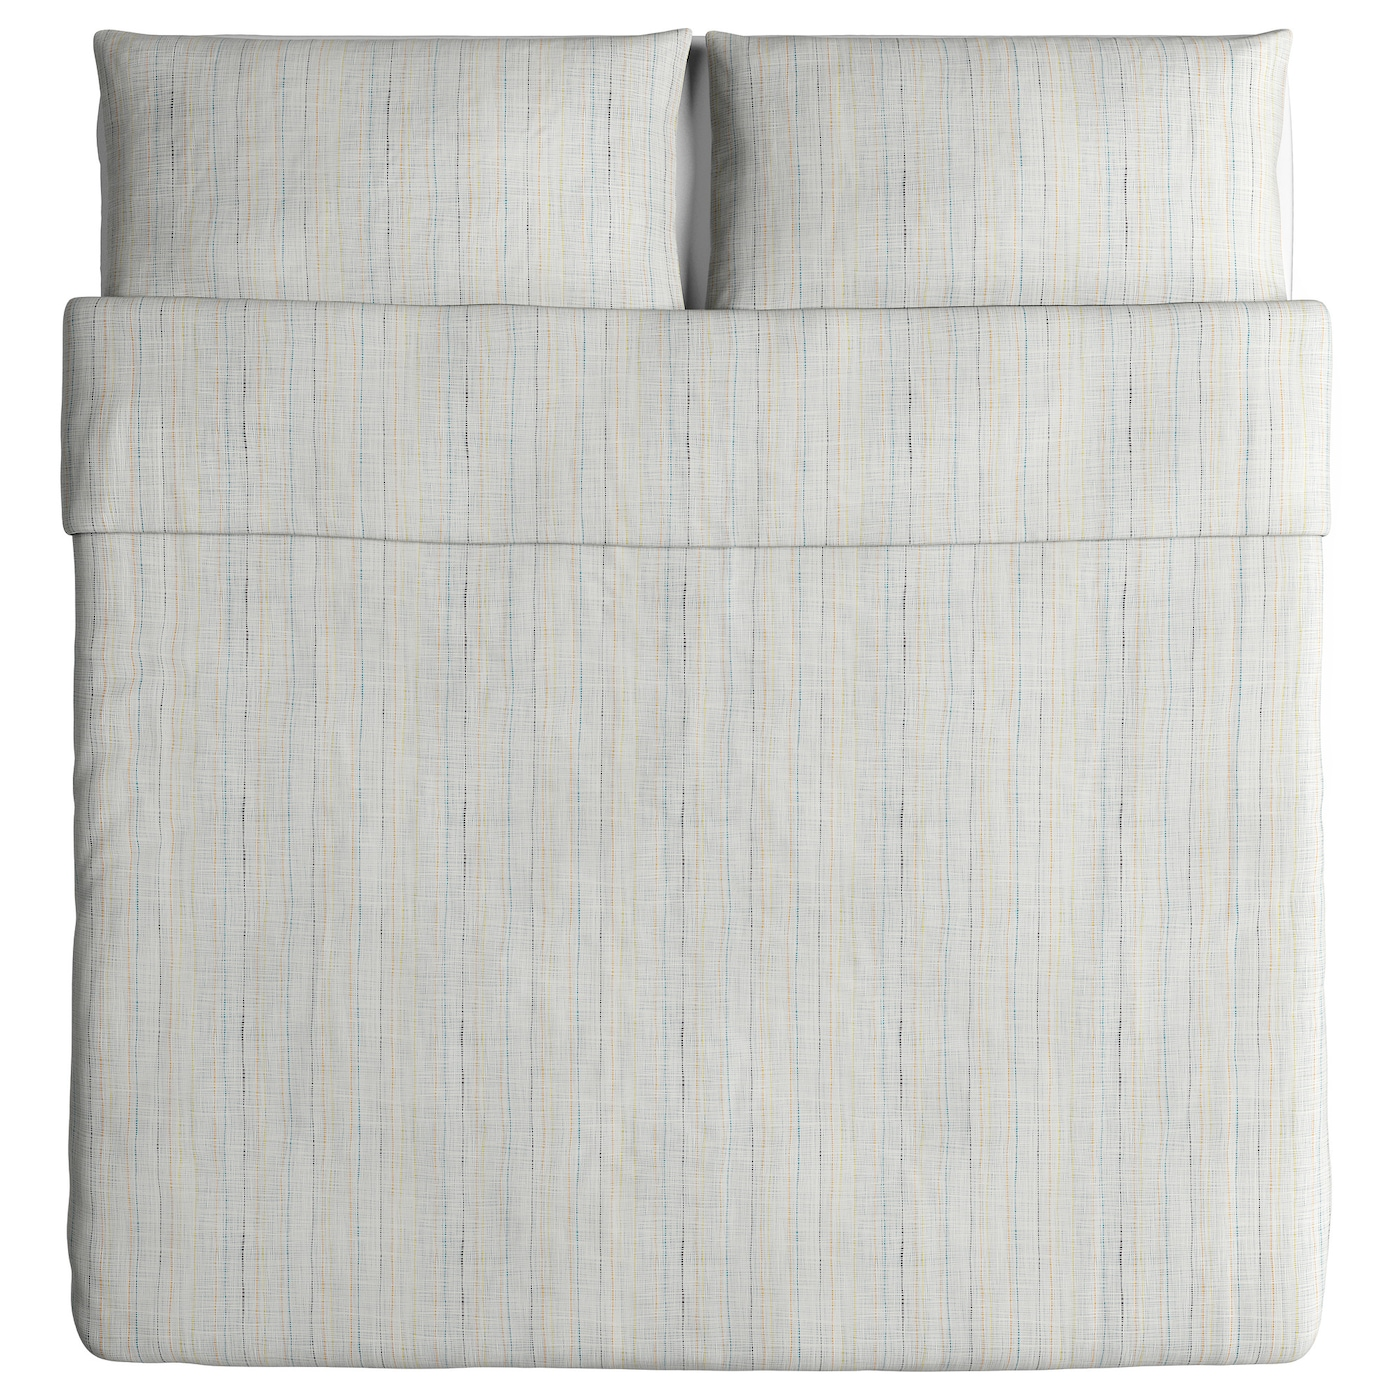 reviews printed best duvet sets irregular bedding helpful pieces microfiber pattern brushed ntbay customer hidden reversible design rated in zipper cover with set pcr